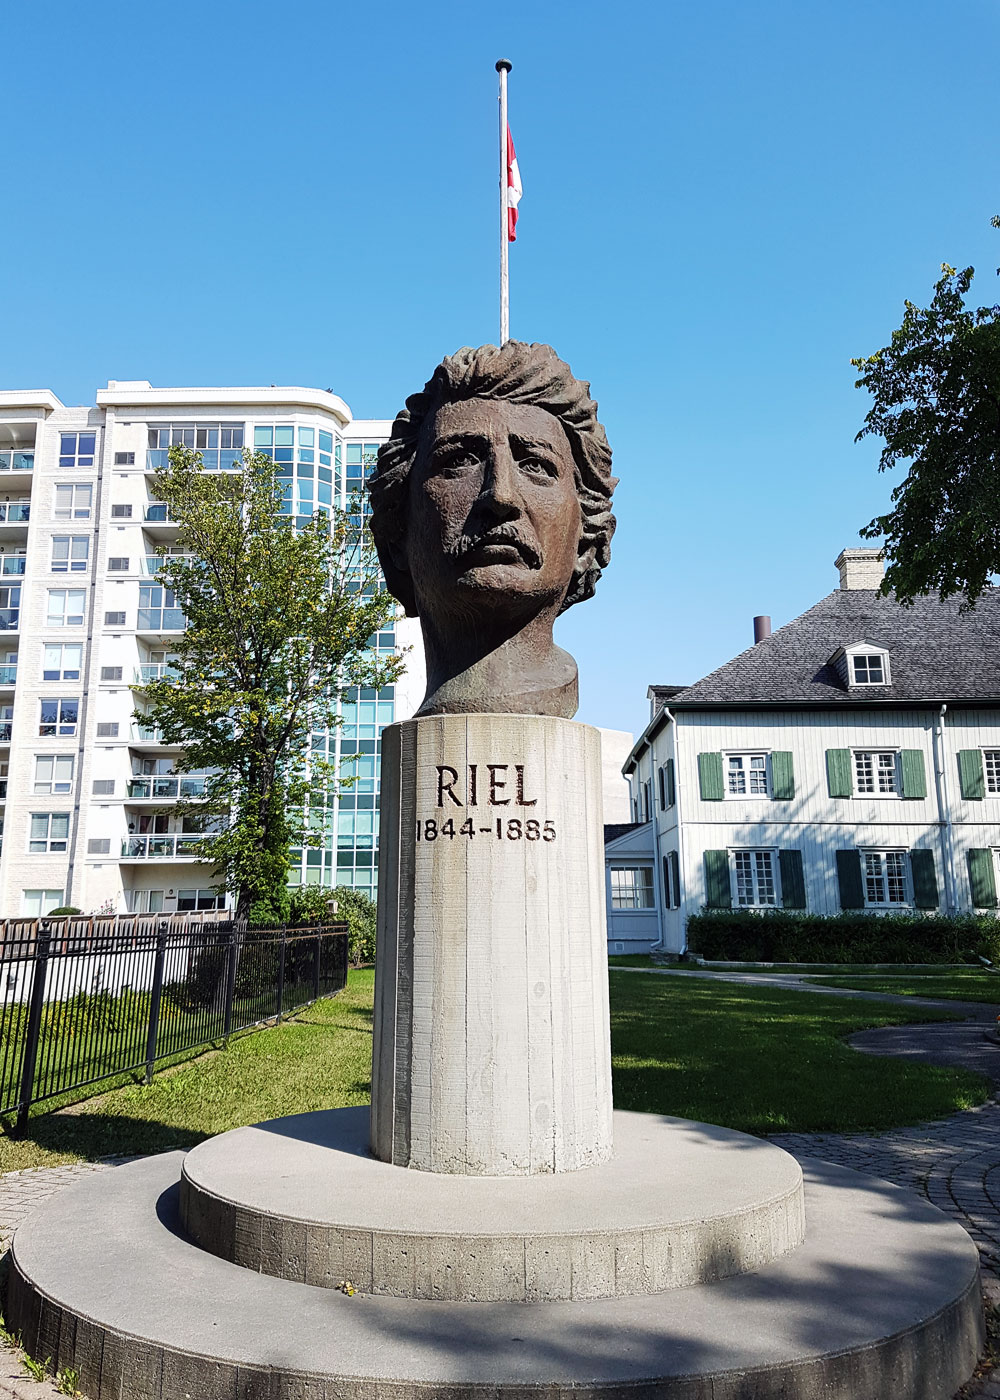 Another statue of Riel